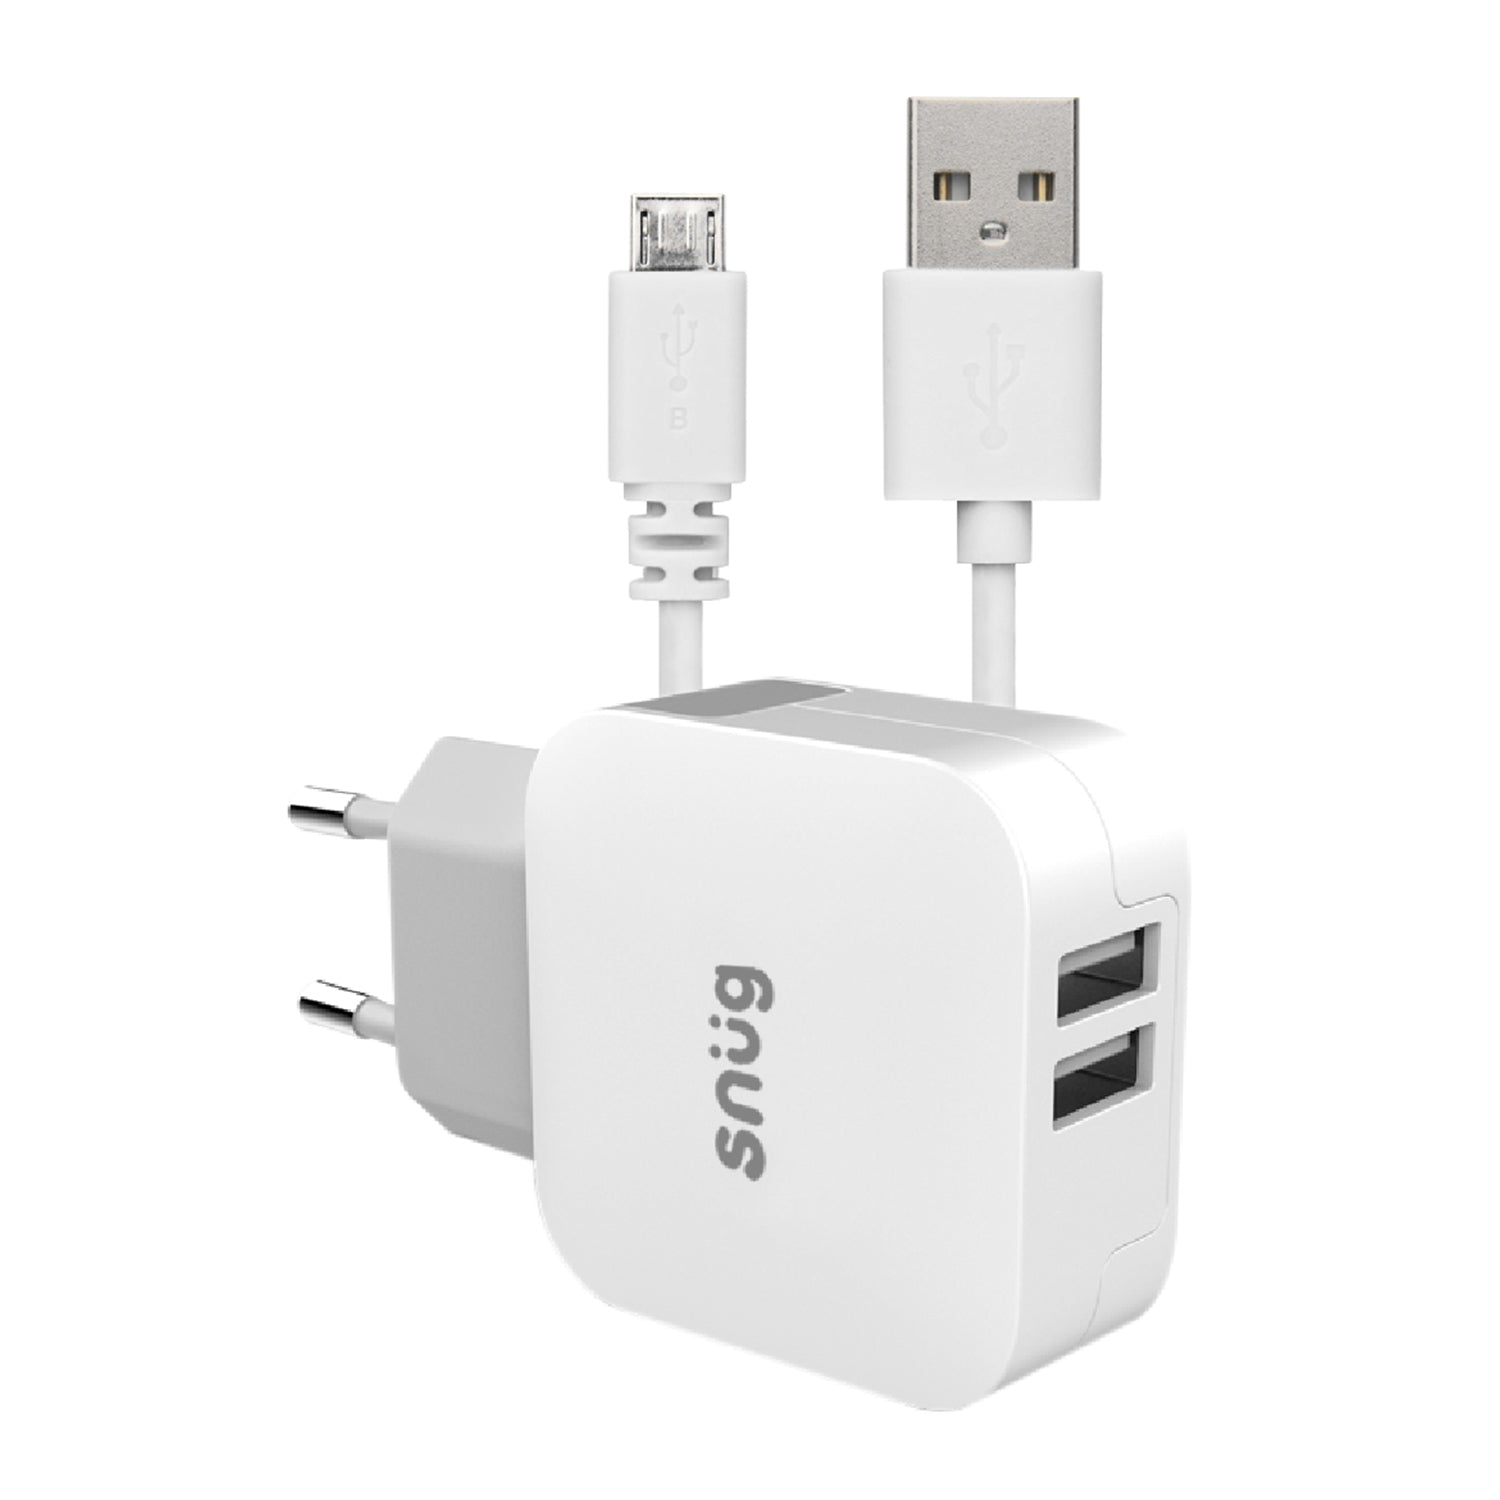 Snüg Home Charger 2 USB Port 3.4 Amp Charger – Micro USB